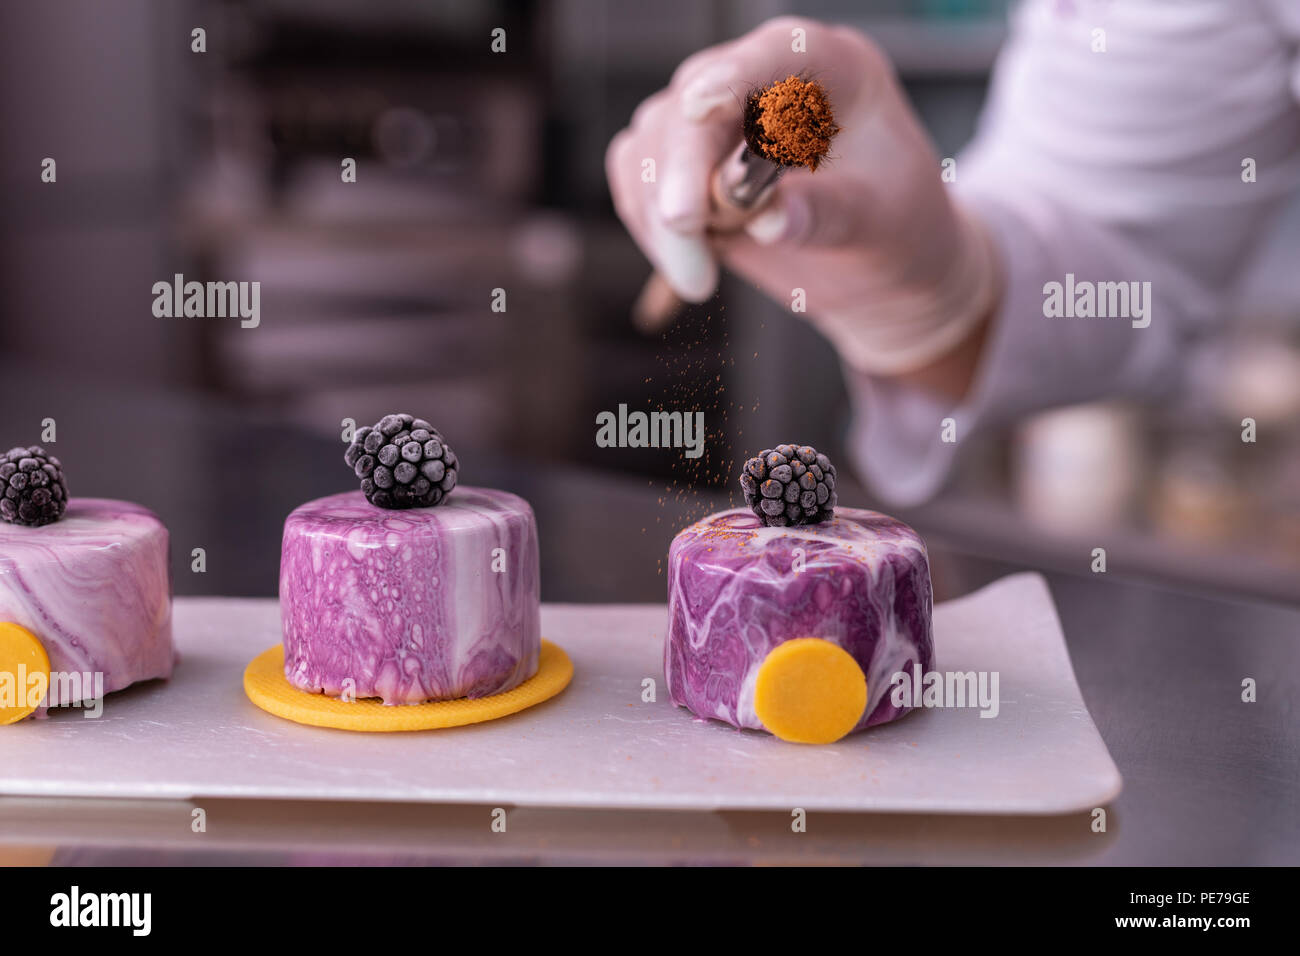 Baker sprinkling some cinnamon on cake with mirror icing - Stock Image